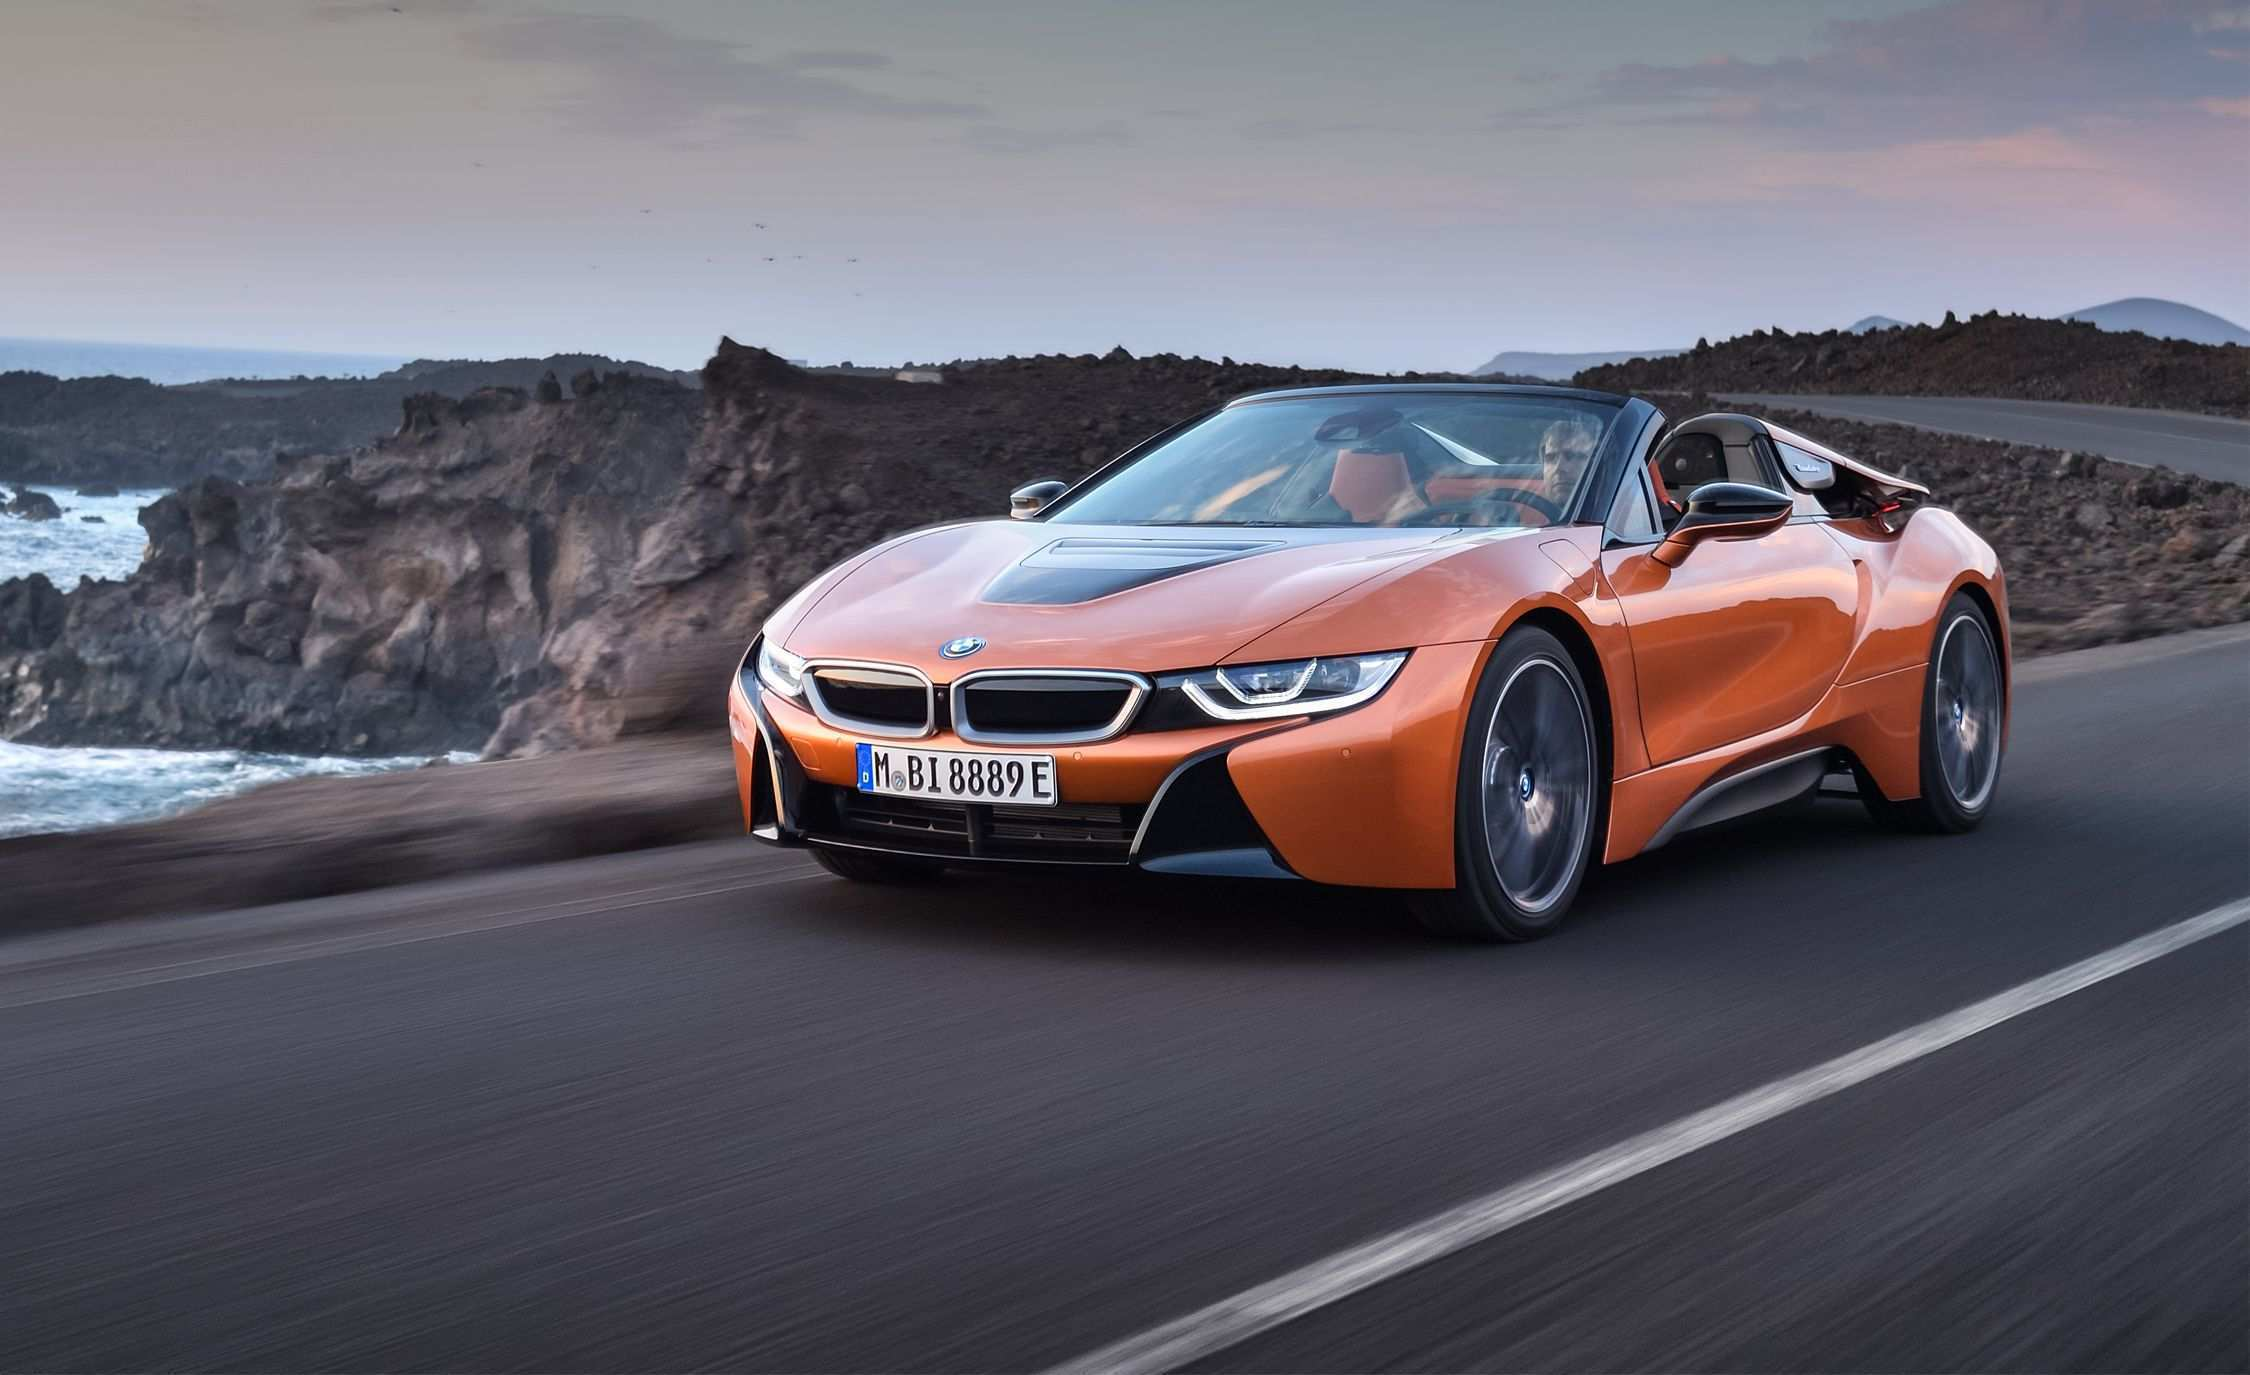 85 The 2019 Bmw Sports Car Images by 2019 Bmw Sports Car